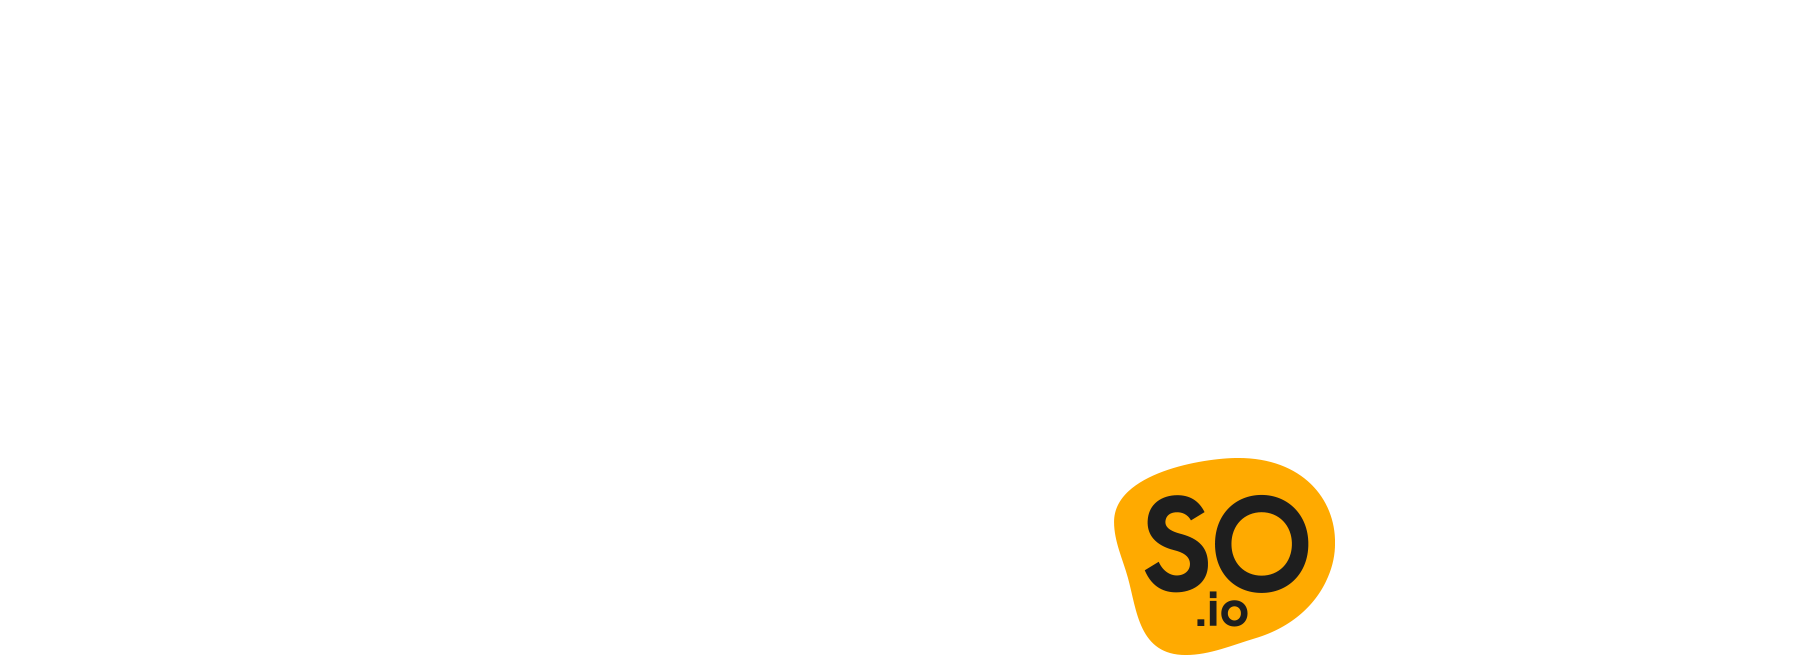 Professional Social Media Marketing Services for Business